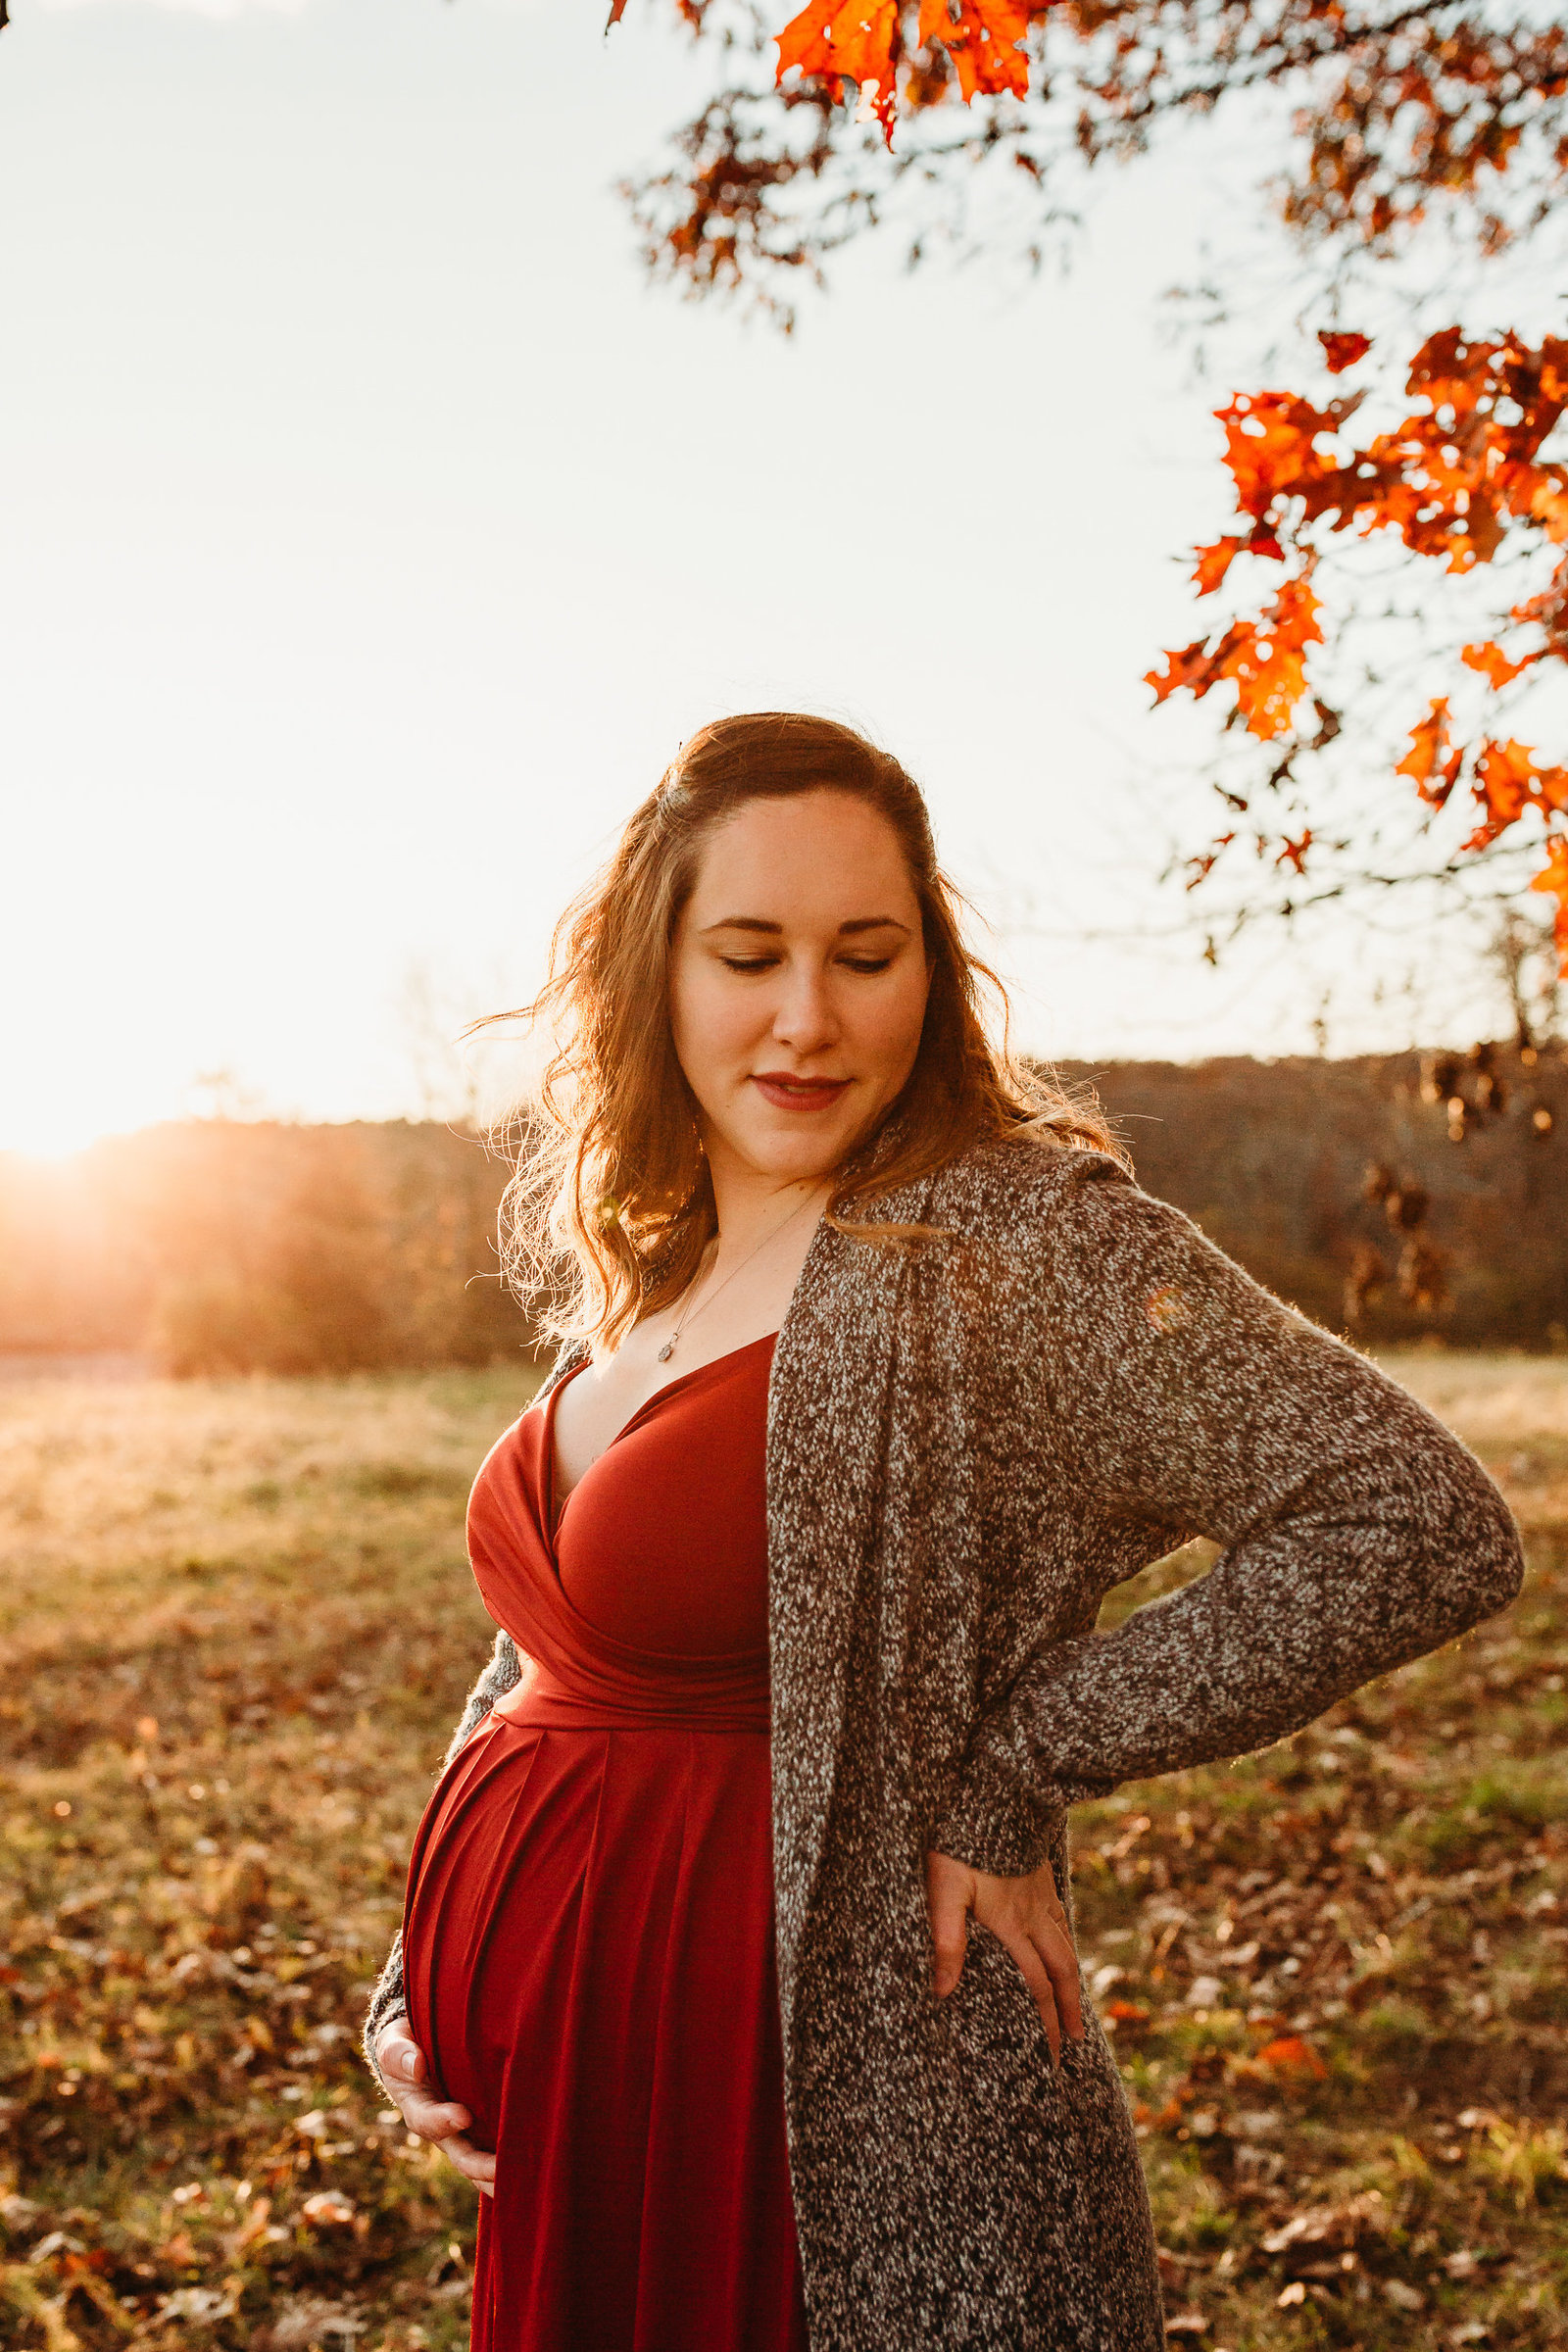 pregnant woman in red dress at autumn sunset